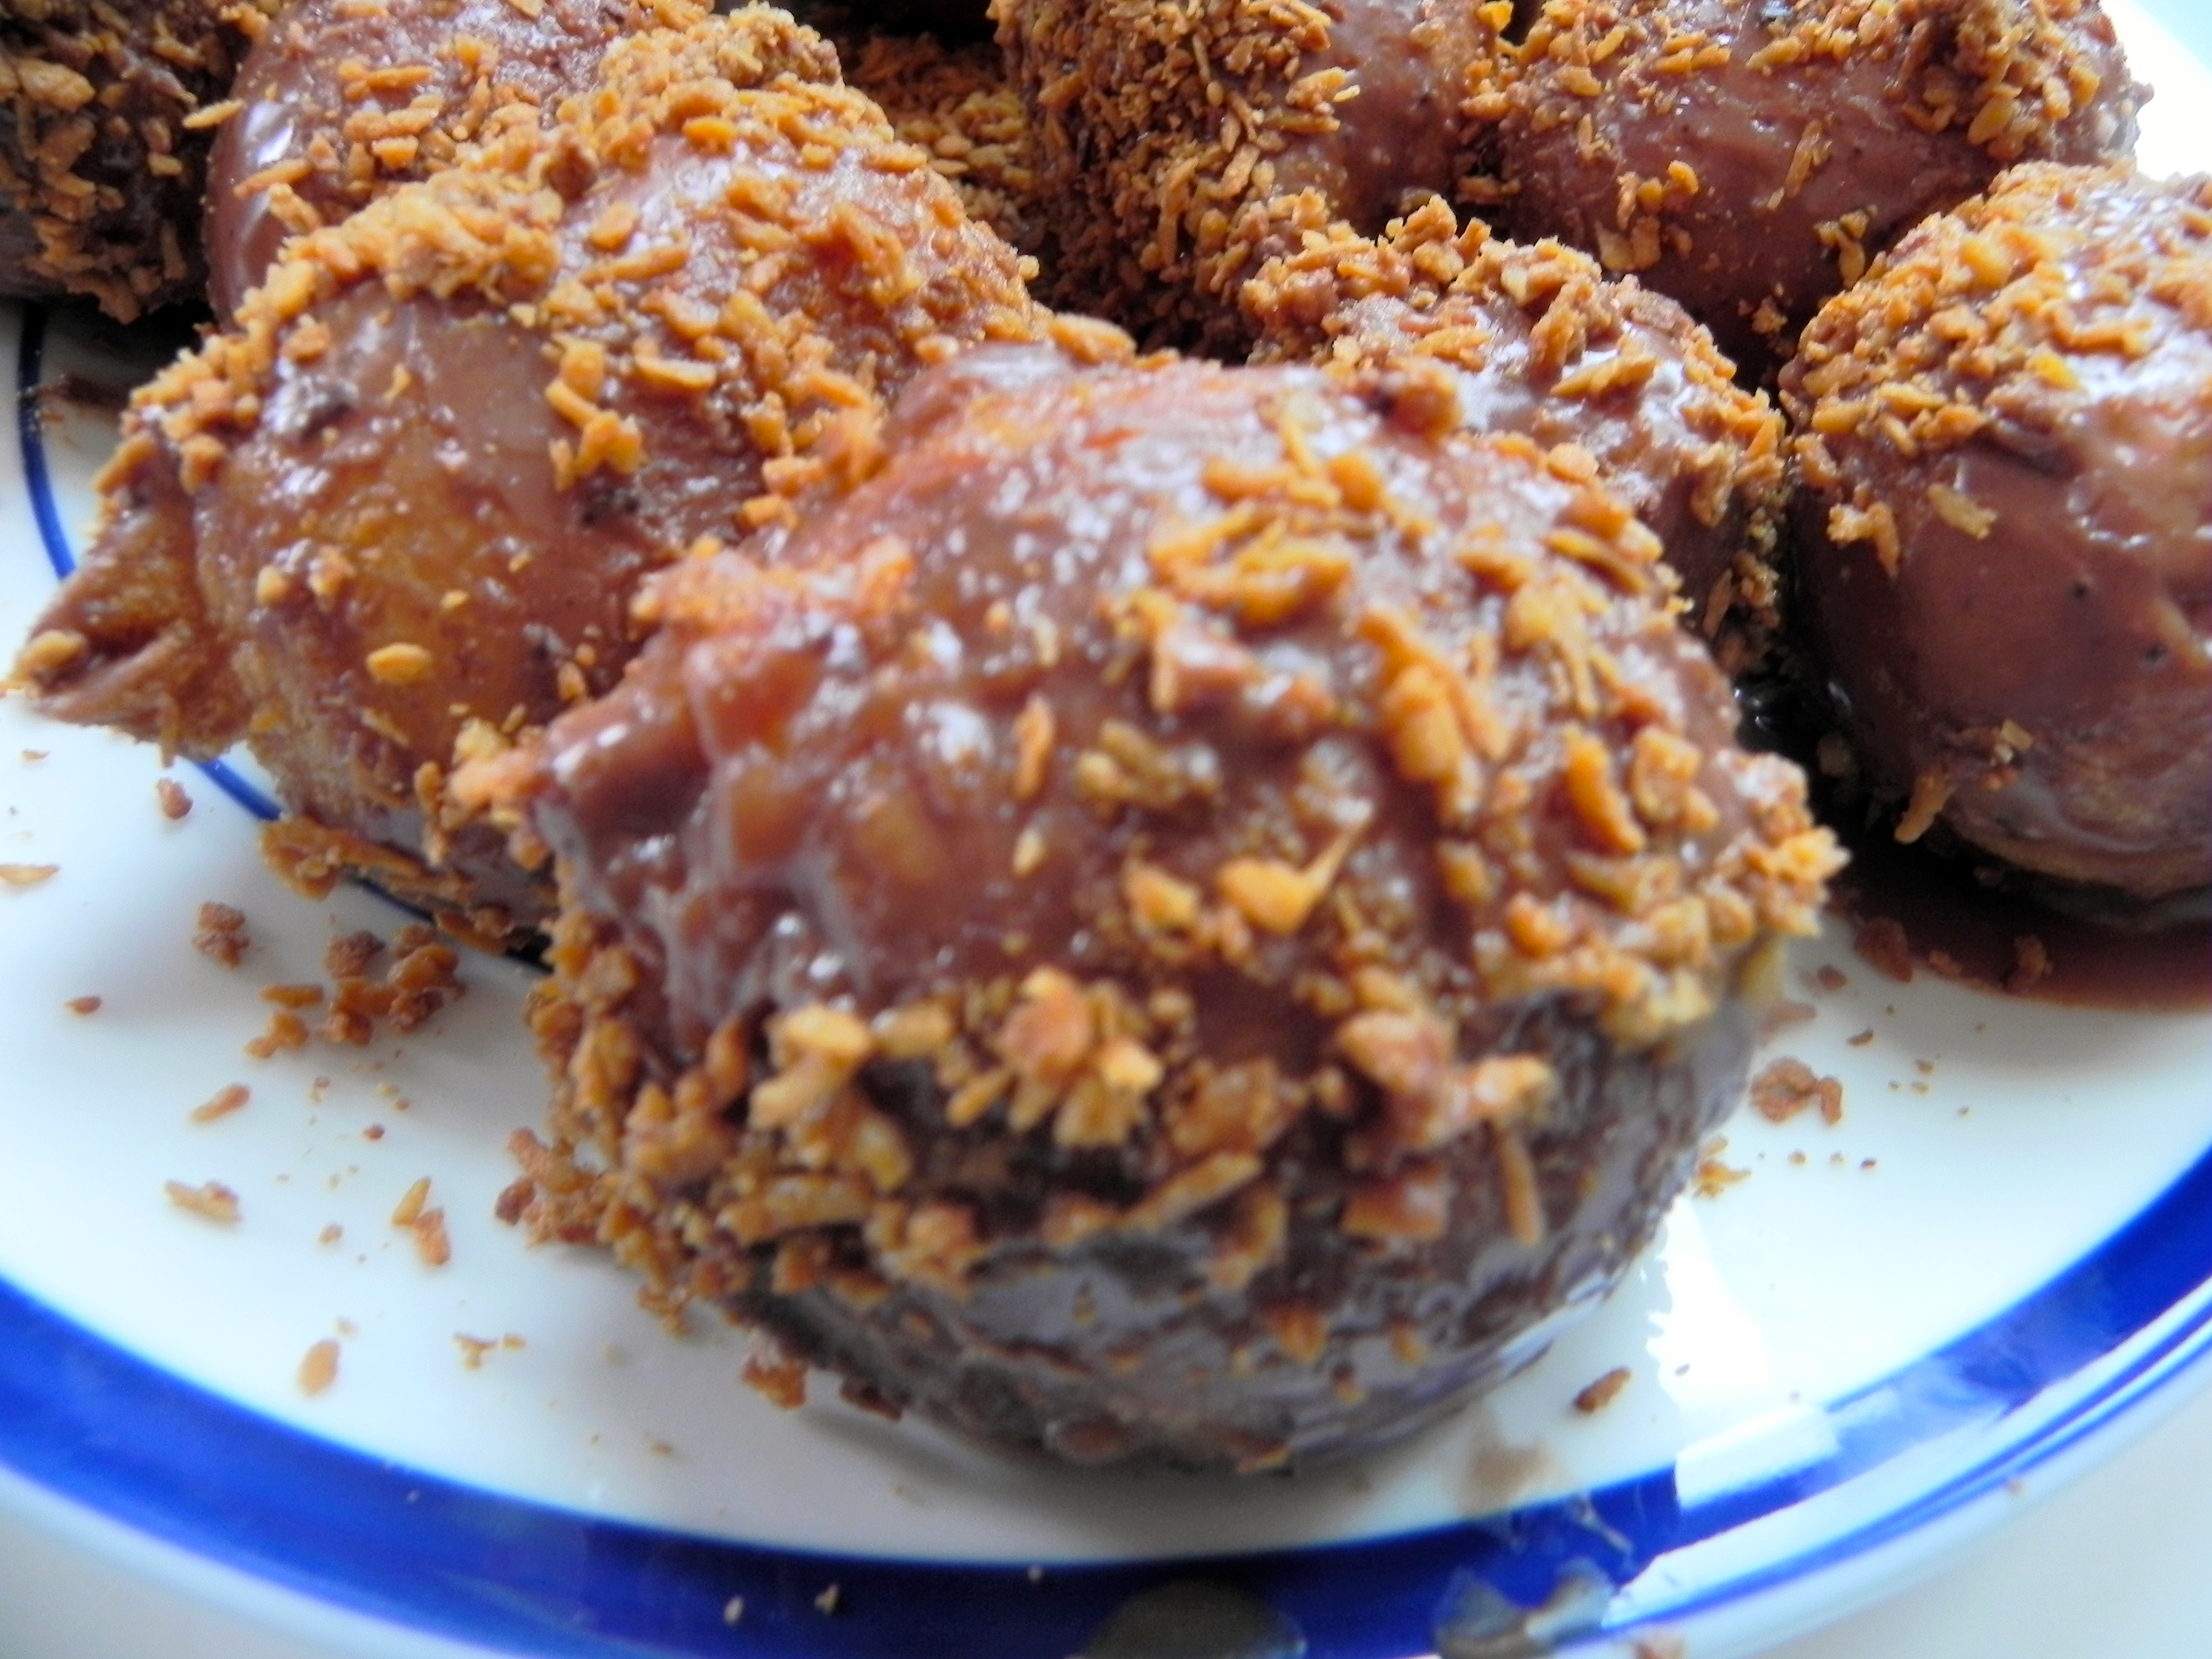 Chocolate Glazed Munchkins with Toasted Coconut Flakes ...